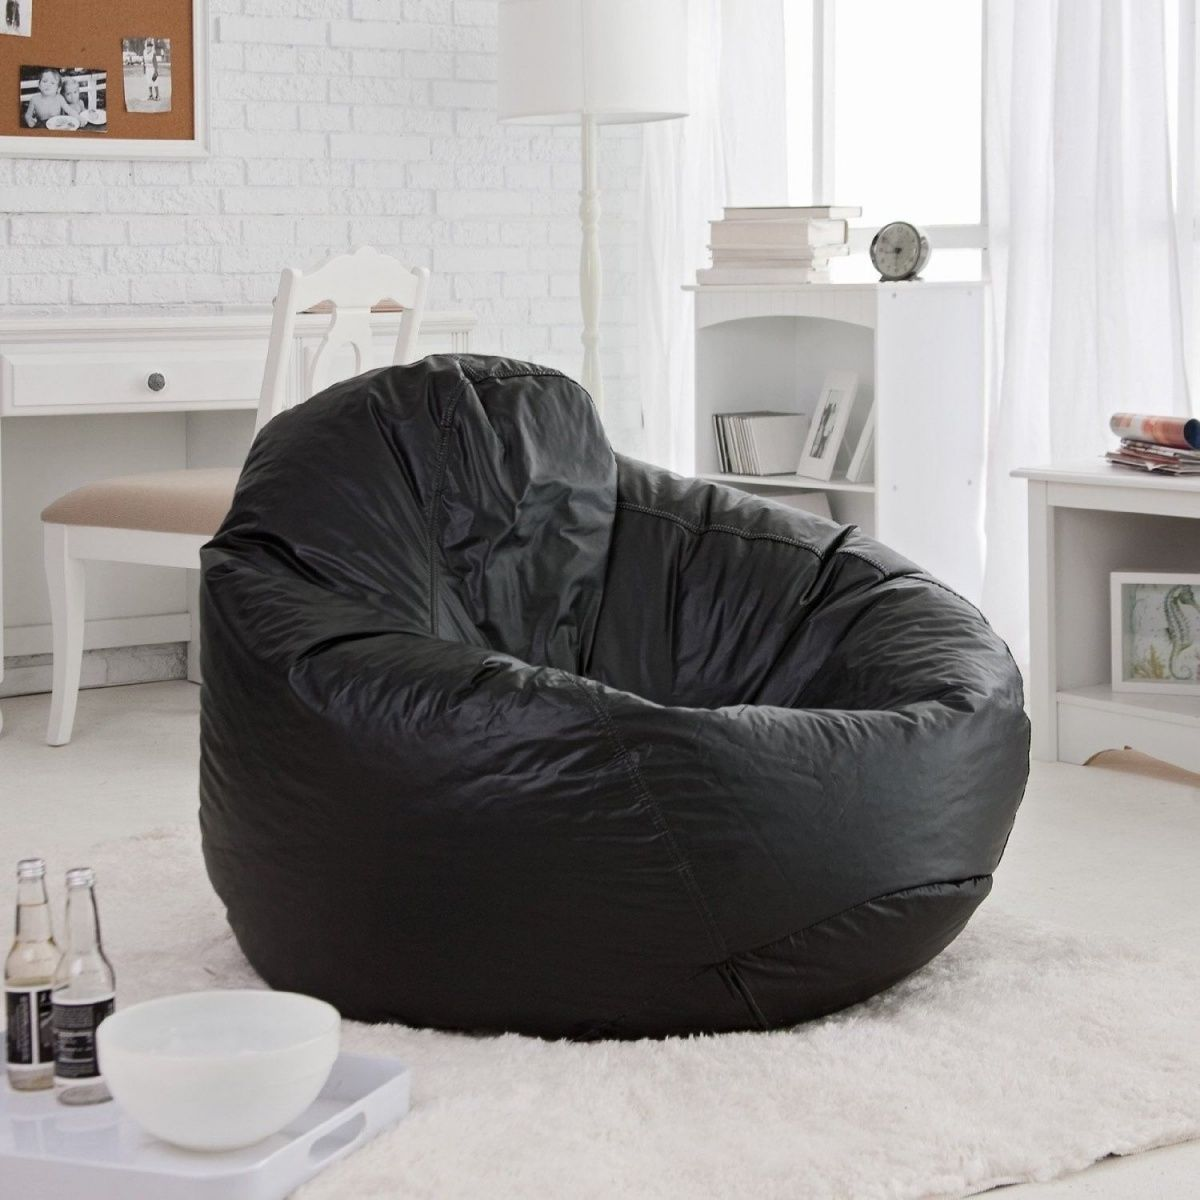 Bean bag chairs for adults - Cool Bean Bag Chairs For Adults